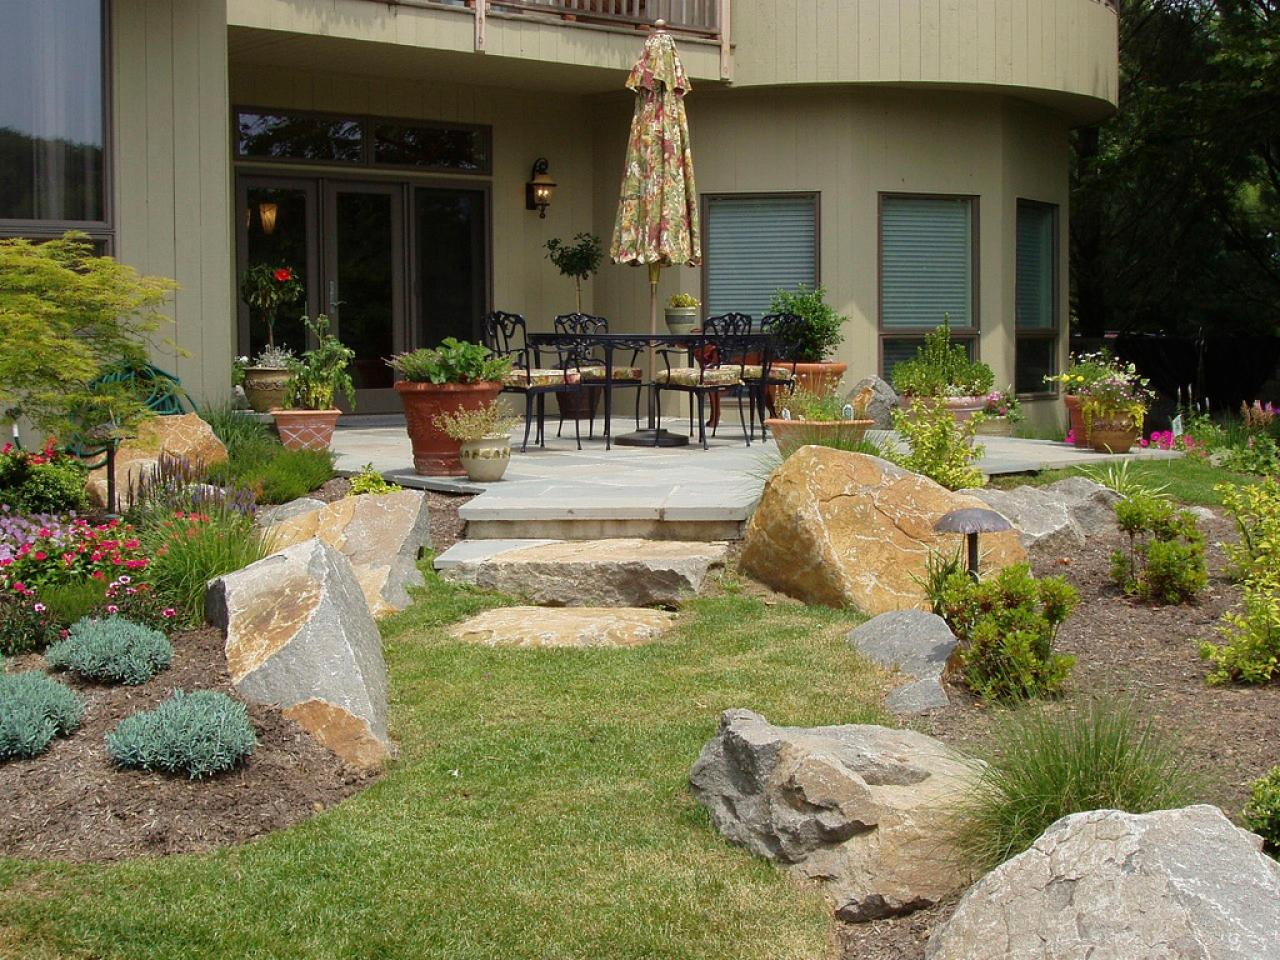 Patio landscaping ideas hgtv Landscape garden design ideas